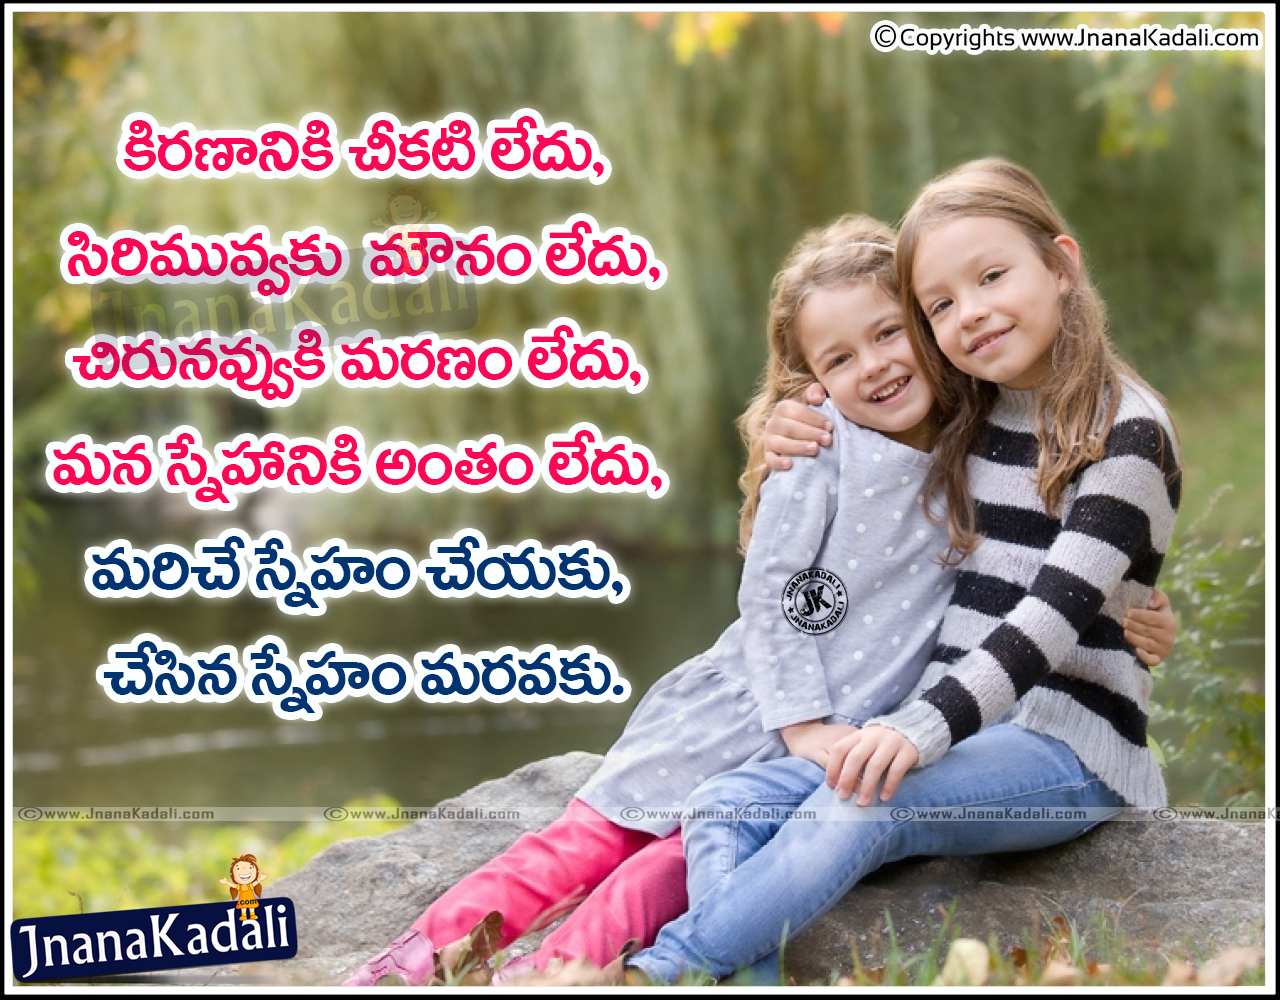 Beautiful Heart Touching Friendship Quotes In Tamil 62835 Infobit